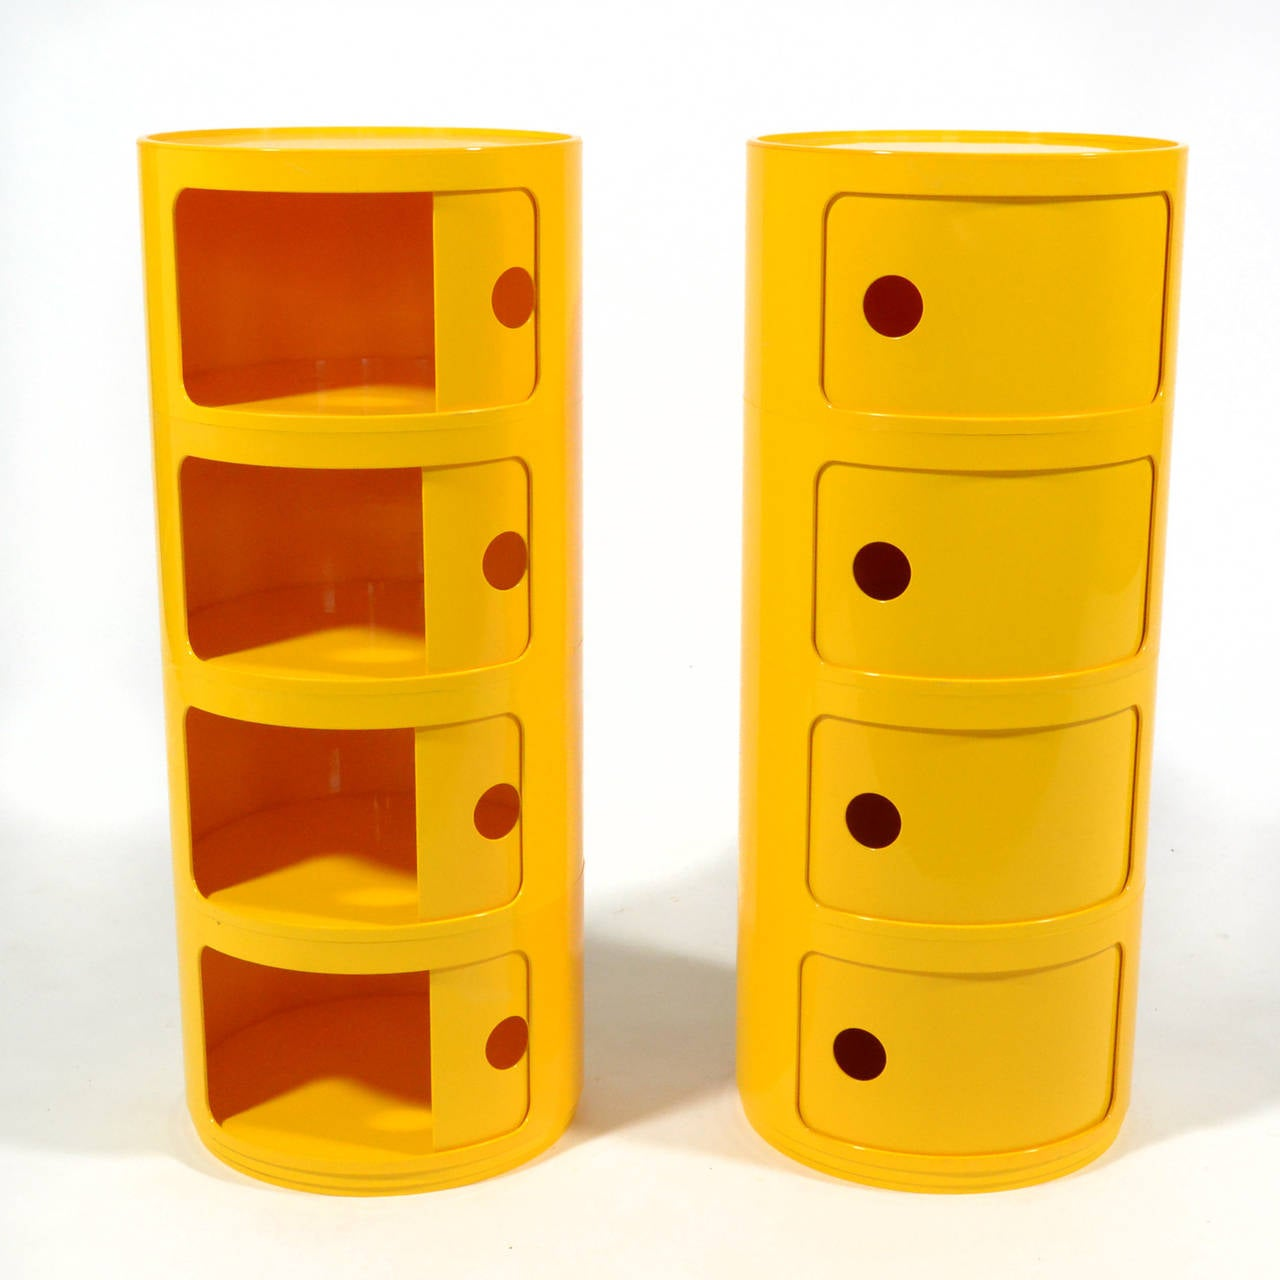 Plastic Anna Castelli Ferrieri Set of Componibili Storage Units by Kartell For Sale